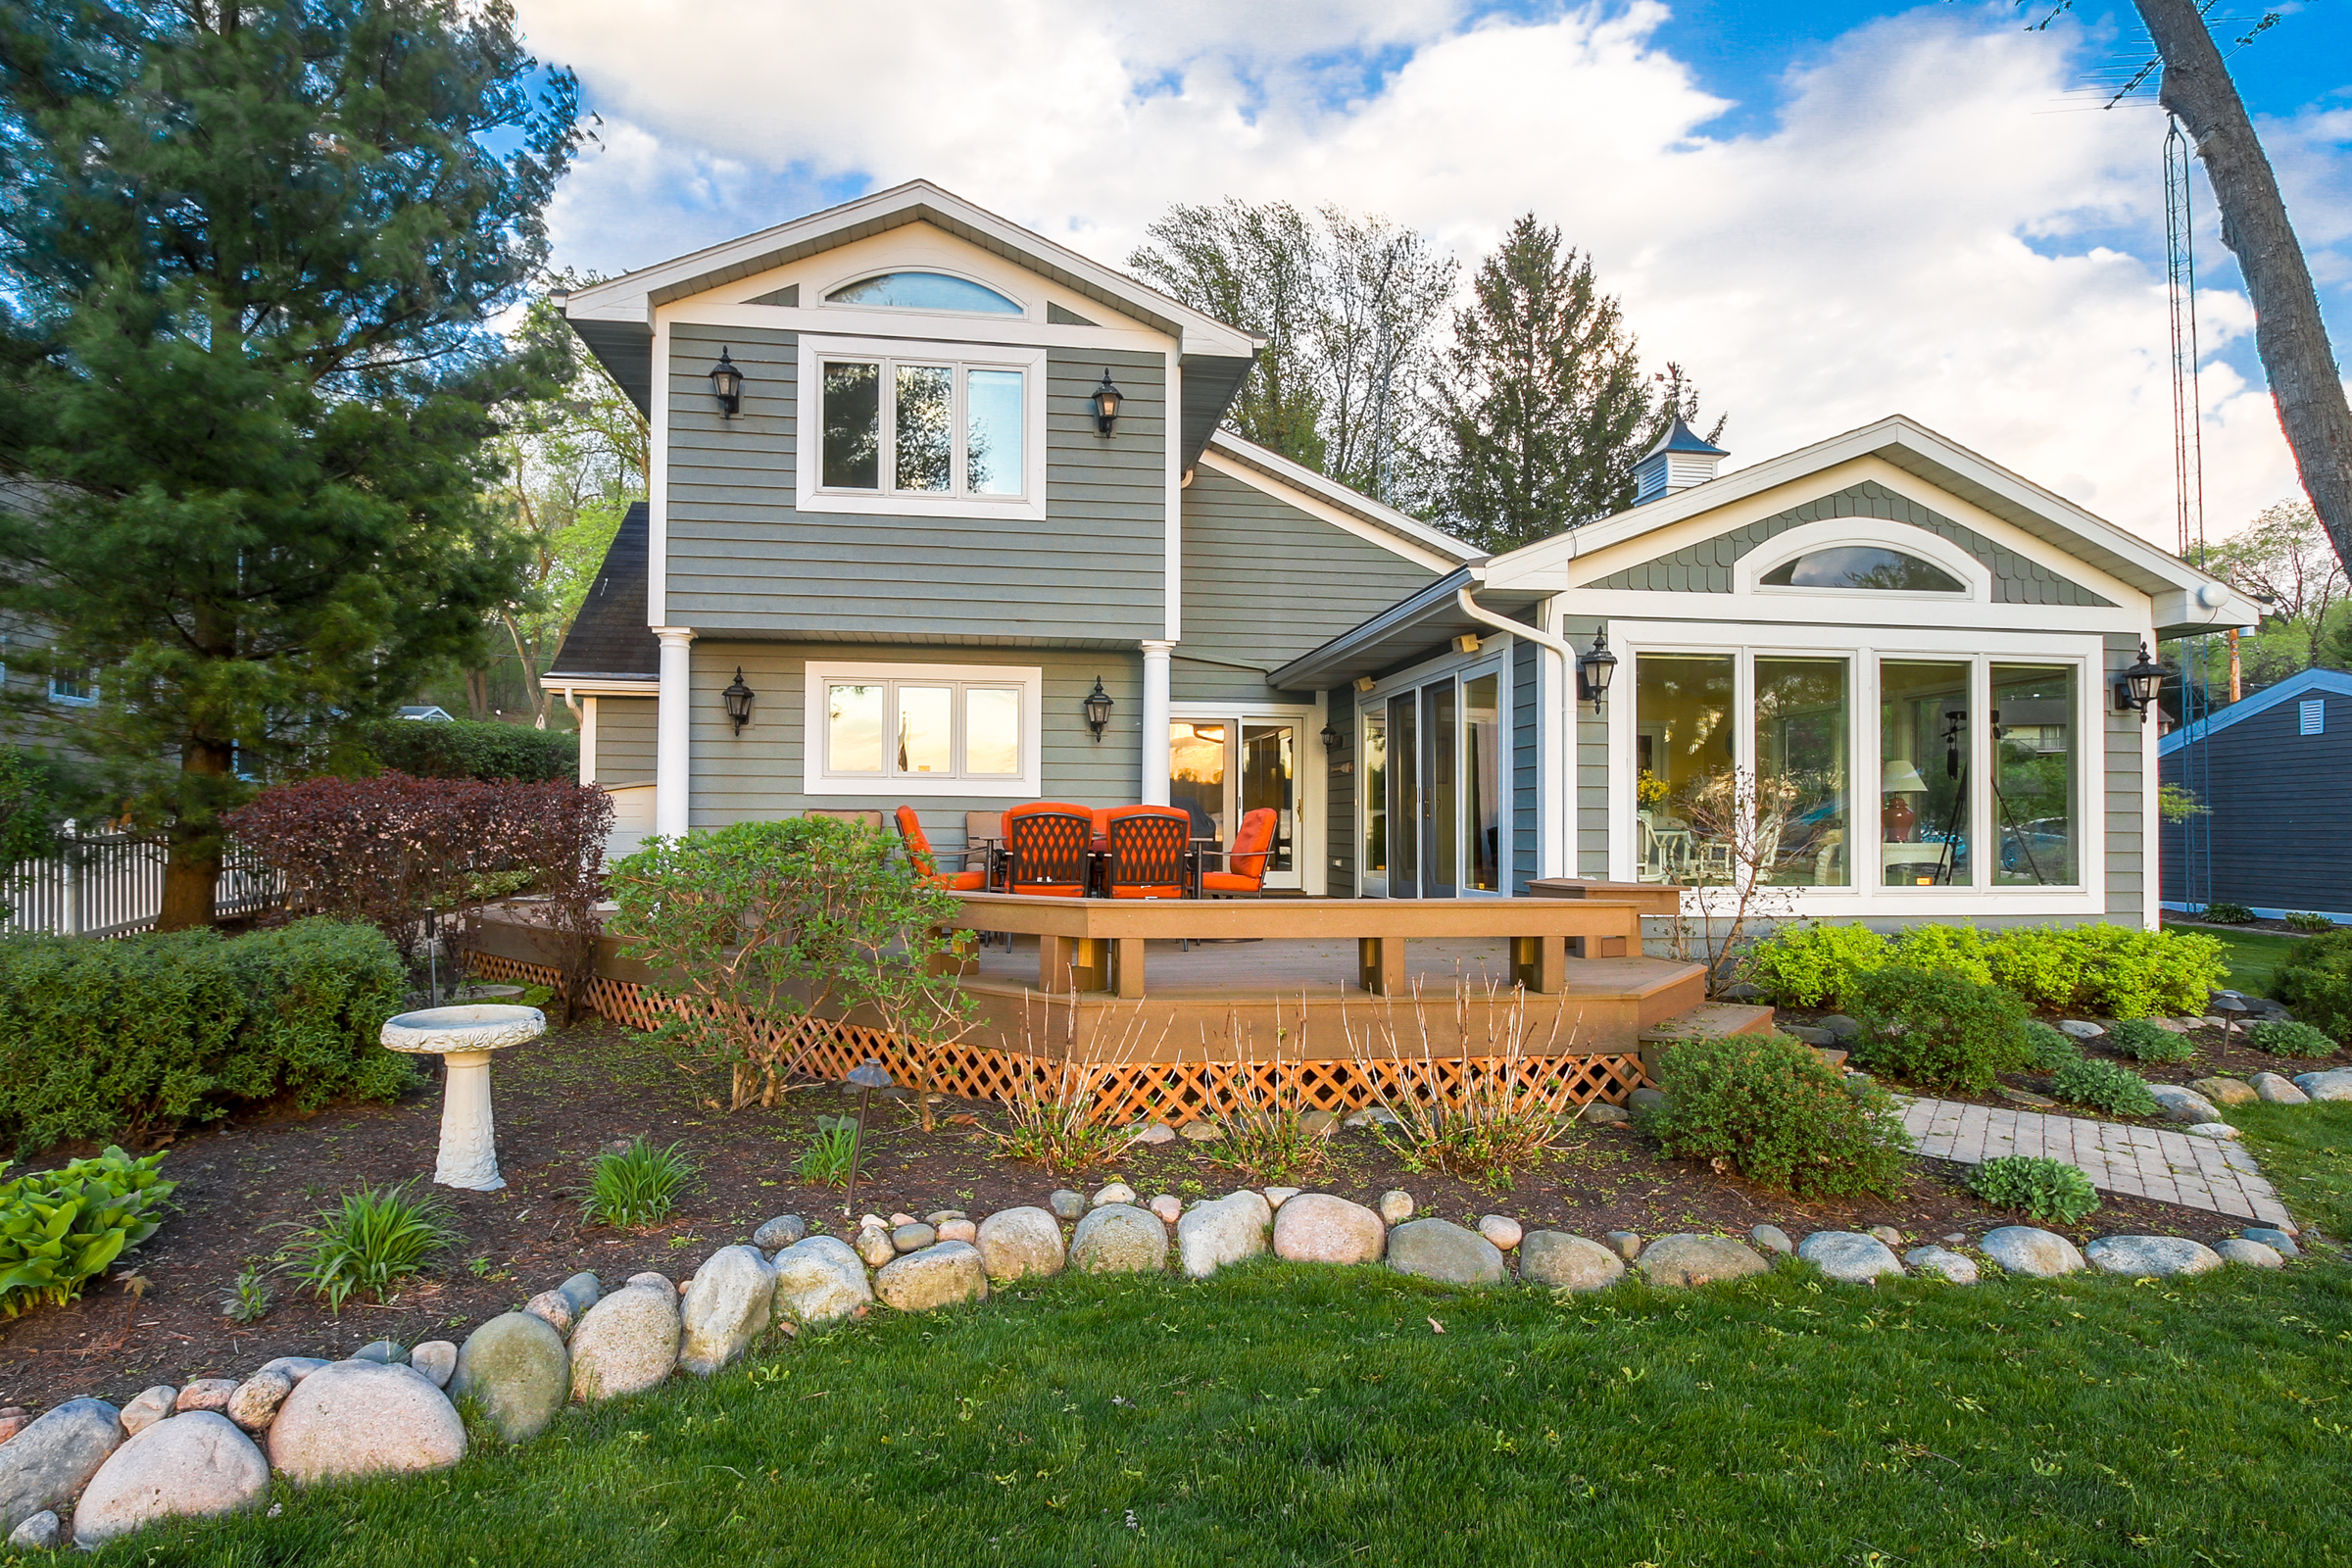 SOLD! Move-In Beautiful 5BR, 3BA Whitewater Lakefront Home   N7645 E Lakeshore Dr, Whitewater WI